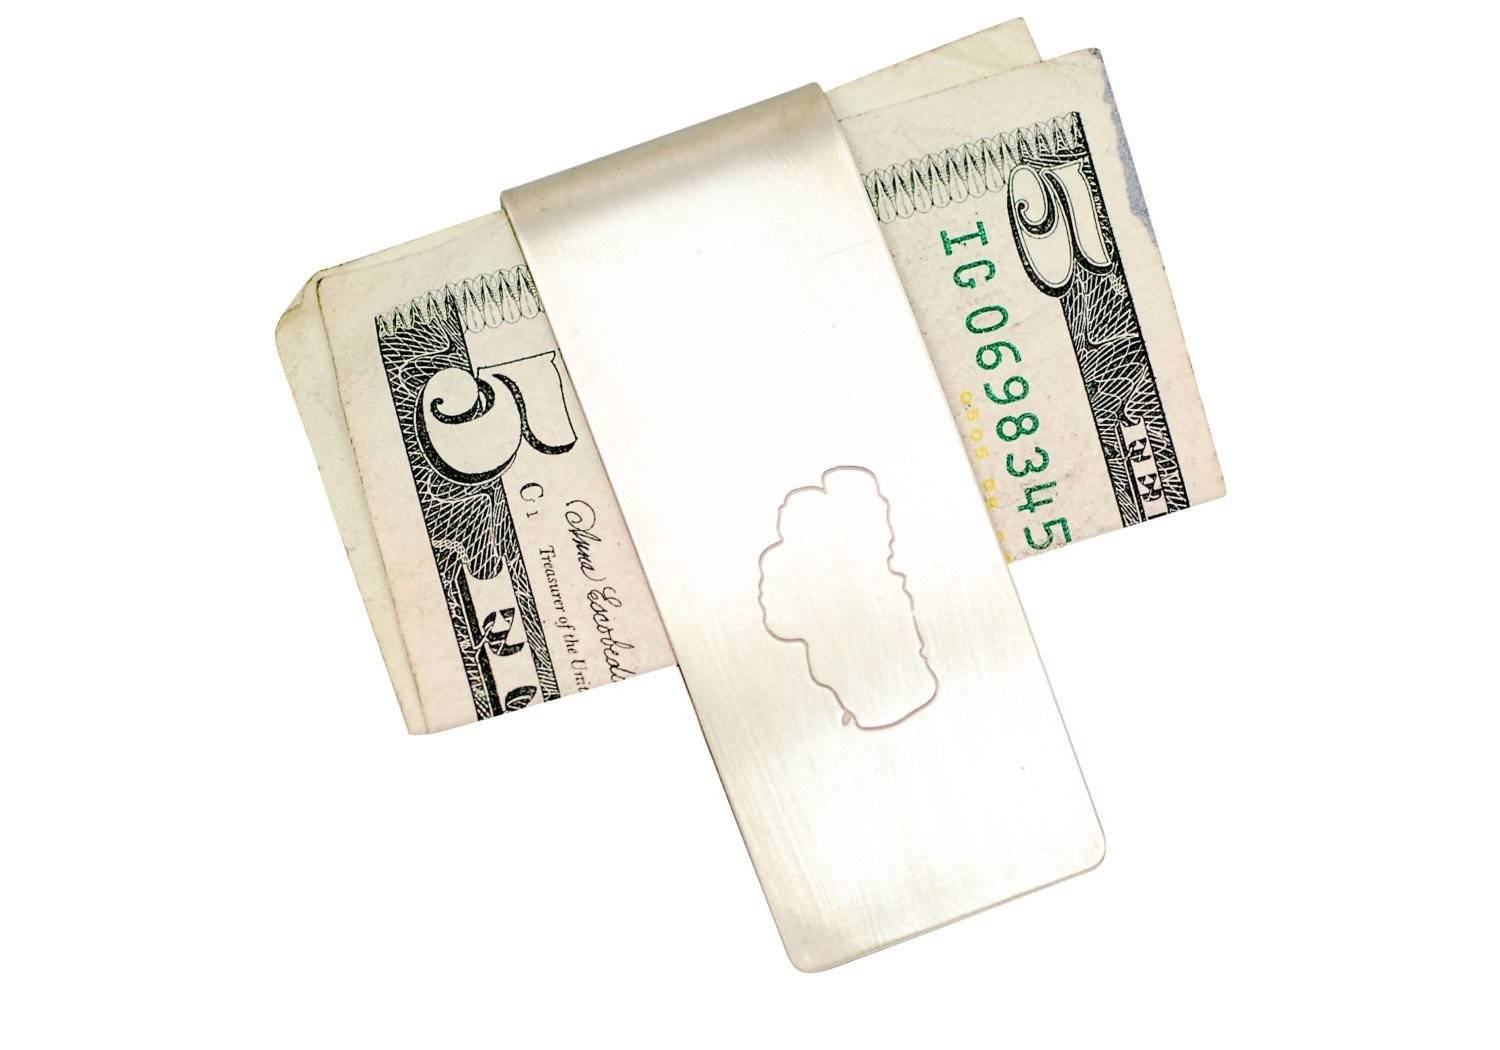 CA or Tahoe Roller Printed Money clips